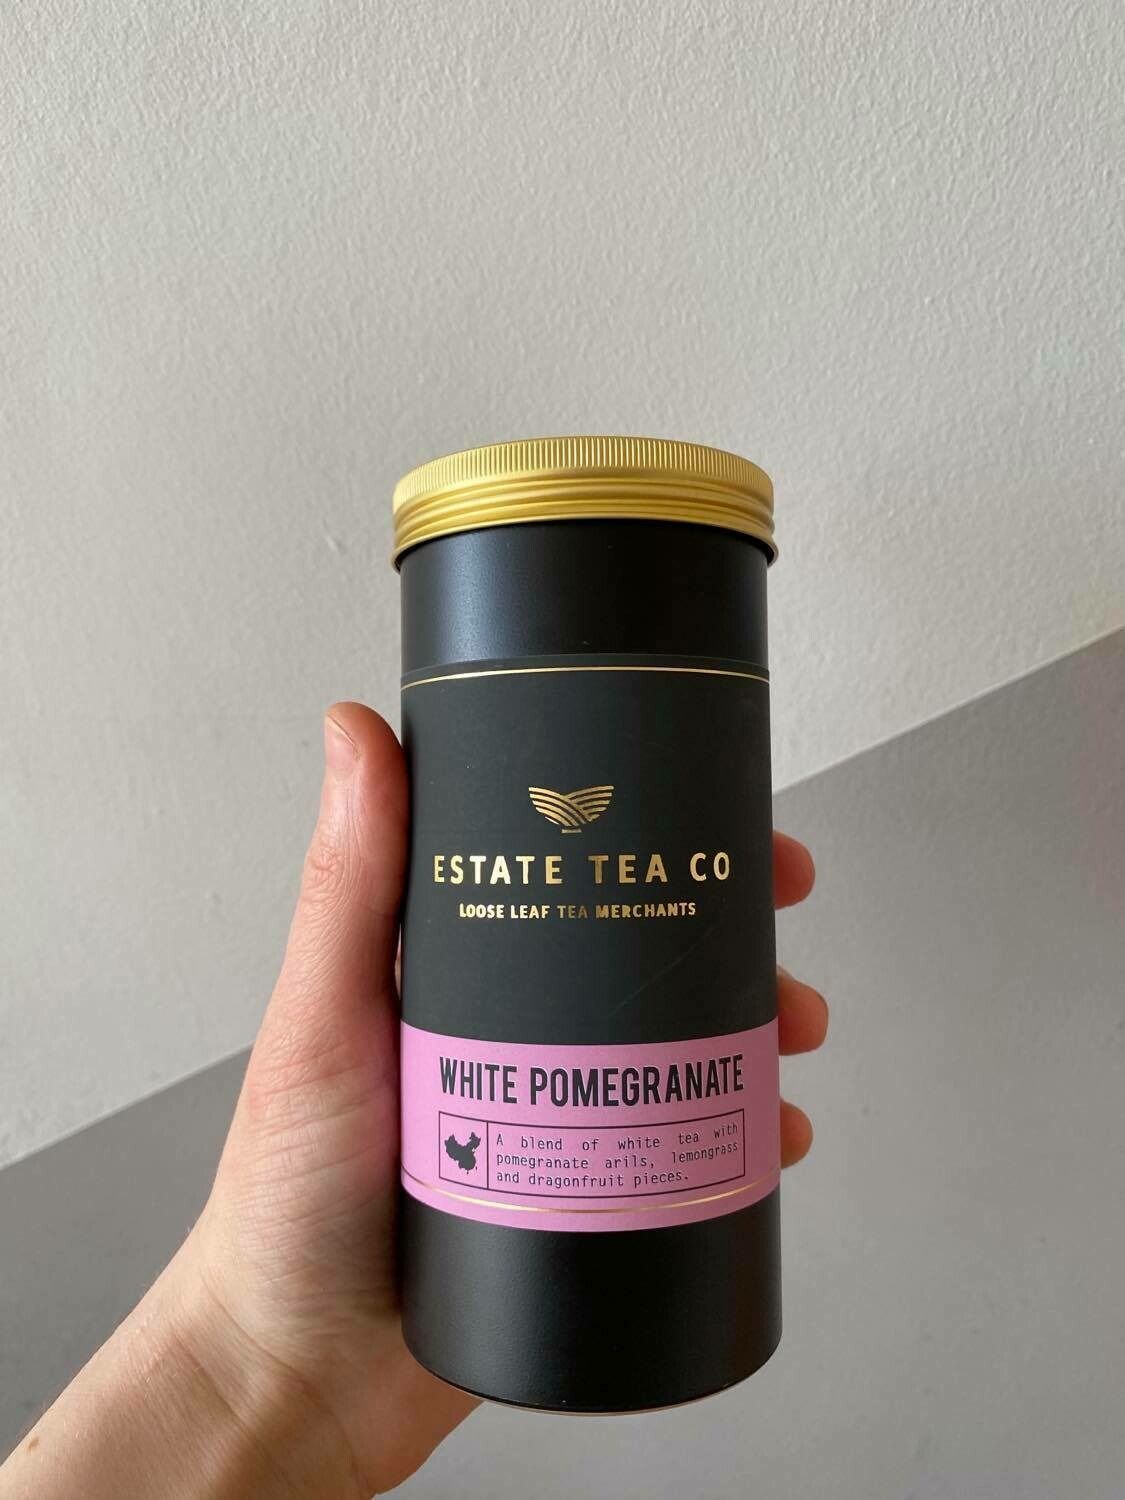 Estate Tea Co. White Pomegranate Loose Leaf